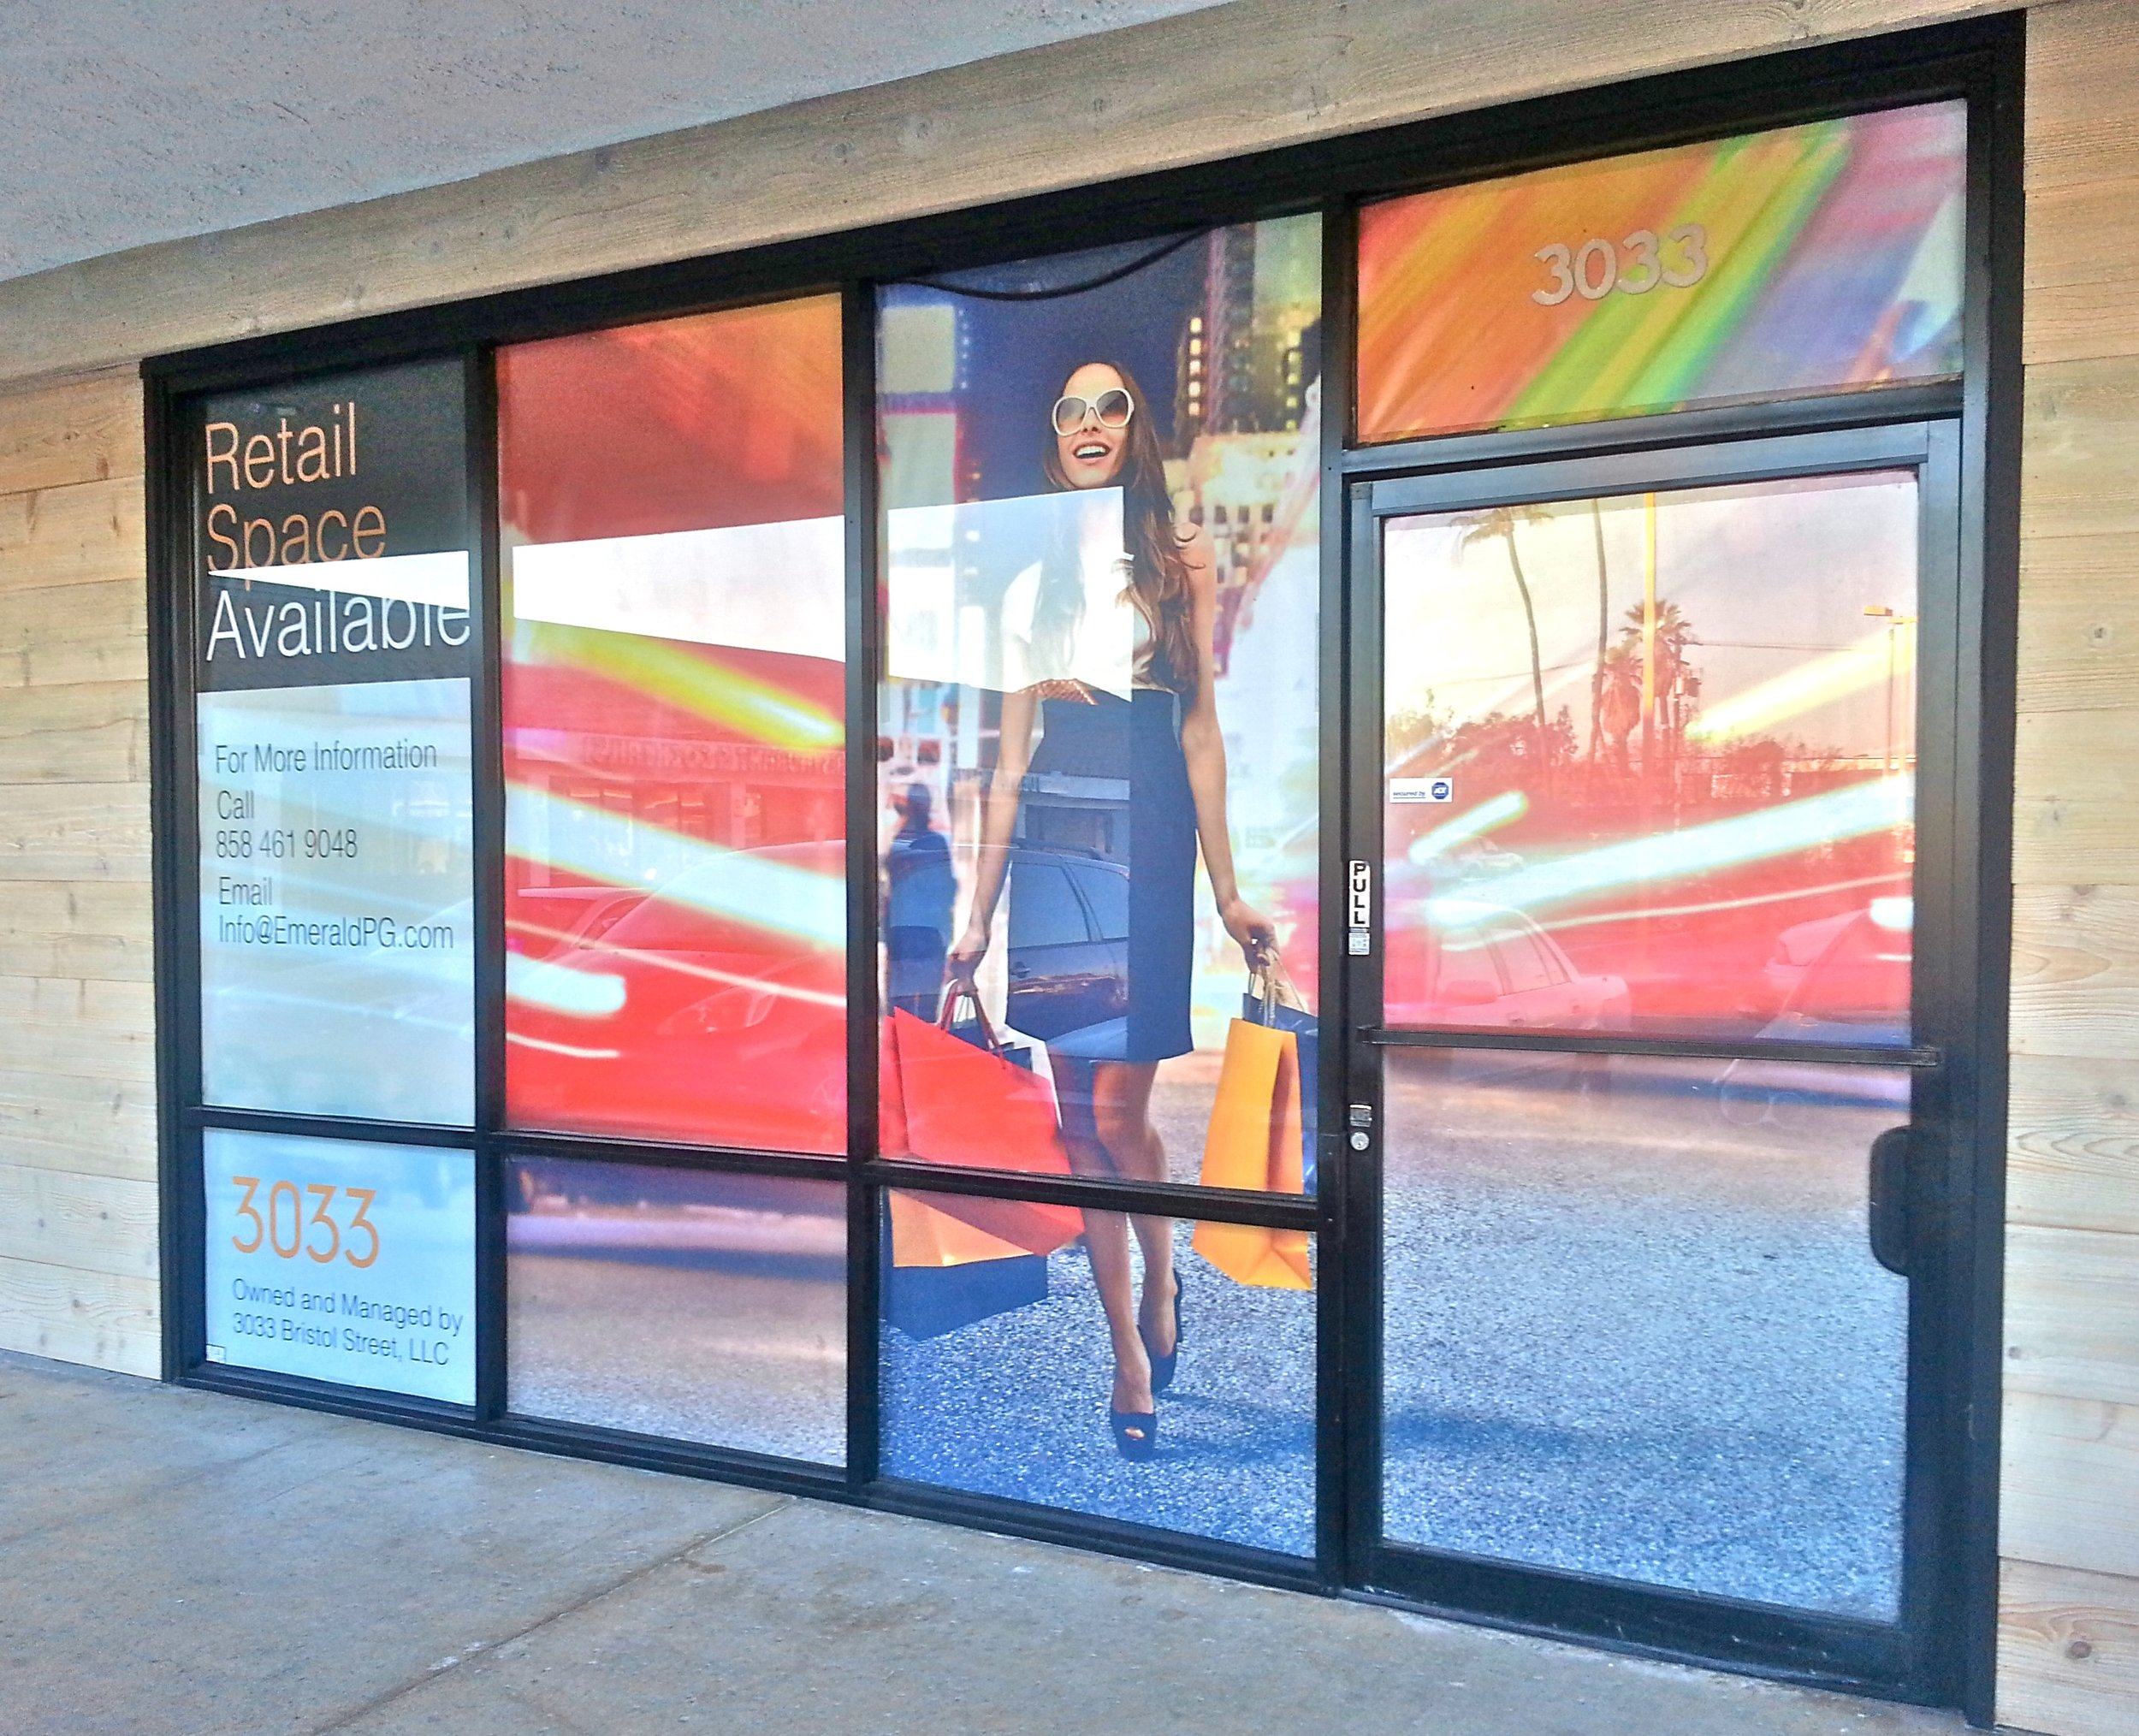 Banner material here is digitally printed and installed inside the window glass with 2-sided clear tape around the edges of each pane. This was an inexpensive alternative to doing a window wrap.